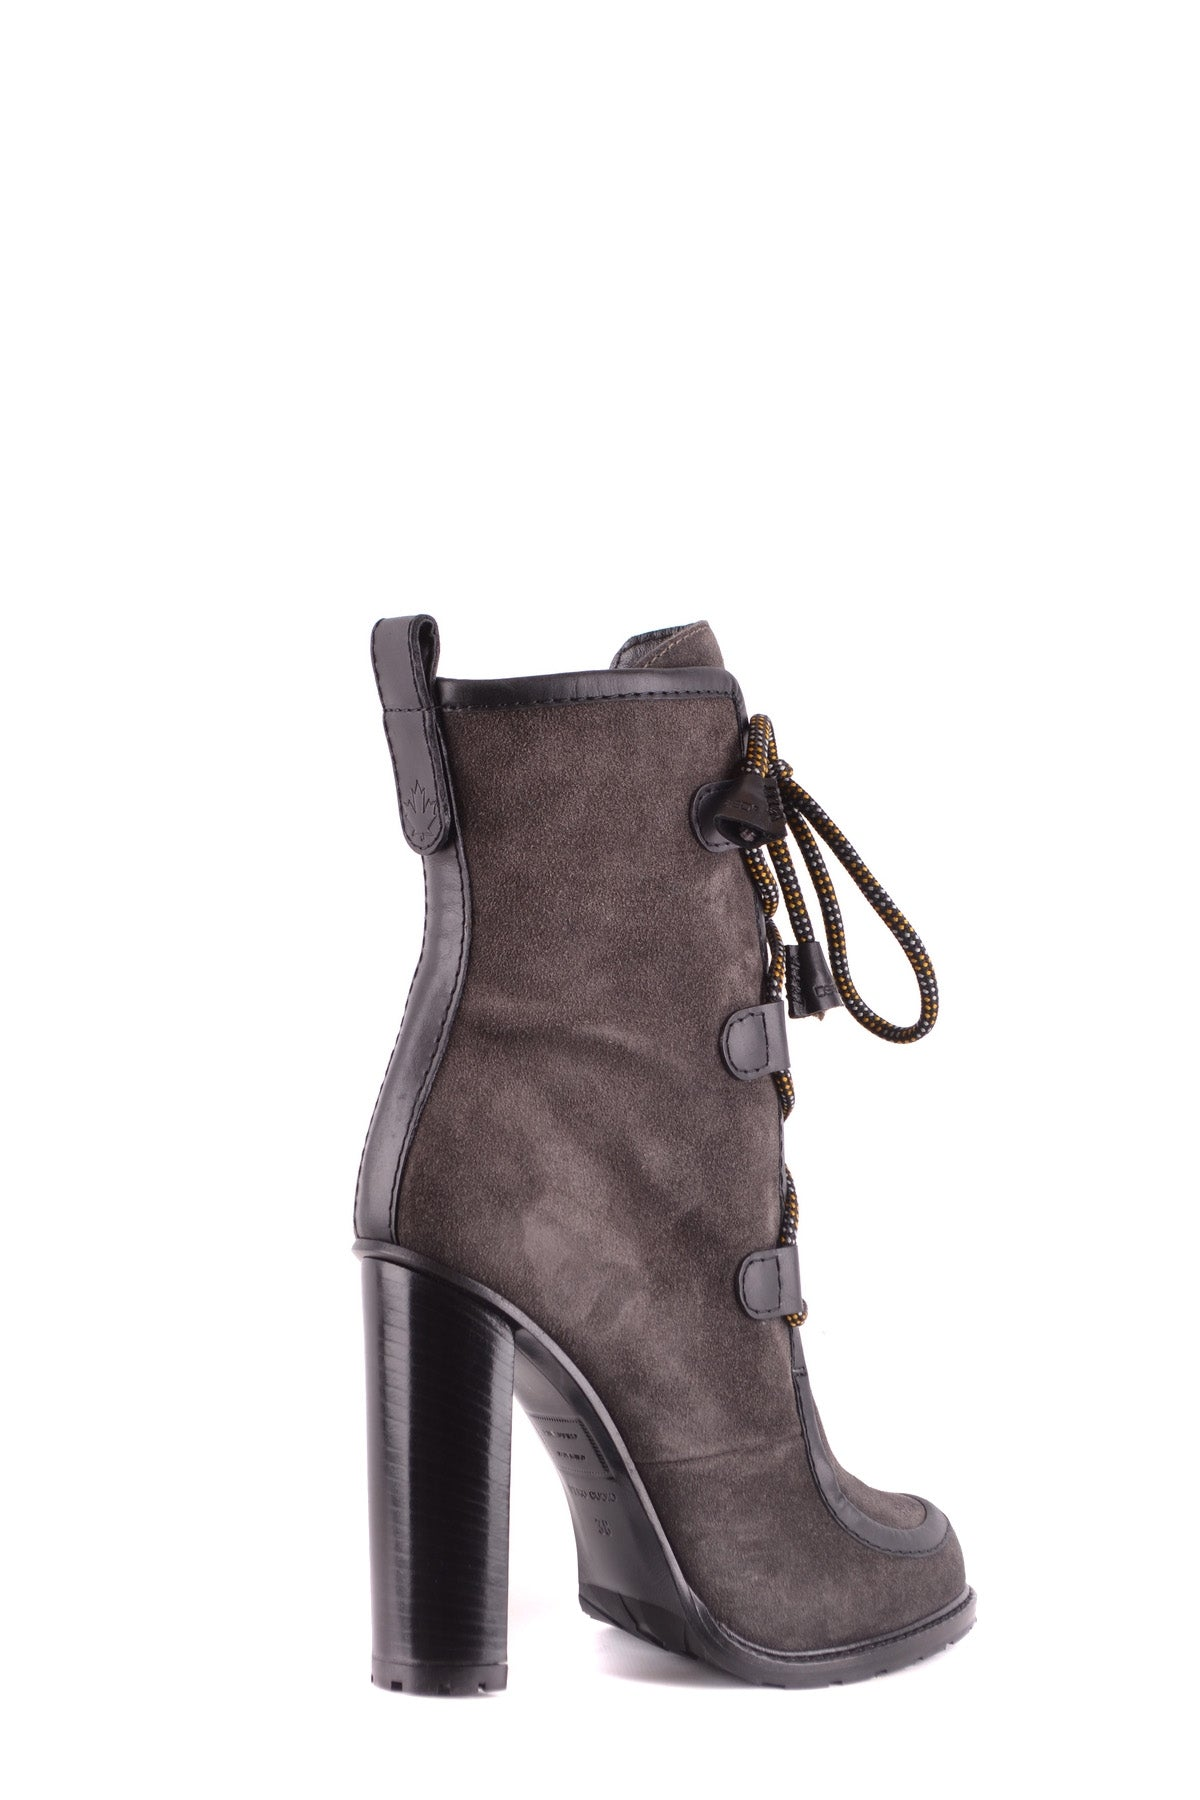 Shoes Dsquared-Bootie - WOMAN-Product Details Type Of Accessory: ShoesTerms: New With LabelYear: 2017Main Color: TurtledoveGender: WomanMade In: ItalySize: EuSeason: Fall / WinterComposition: Chamois 100%-Keyomi-Sook